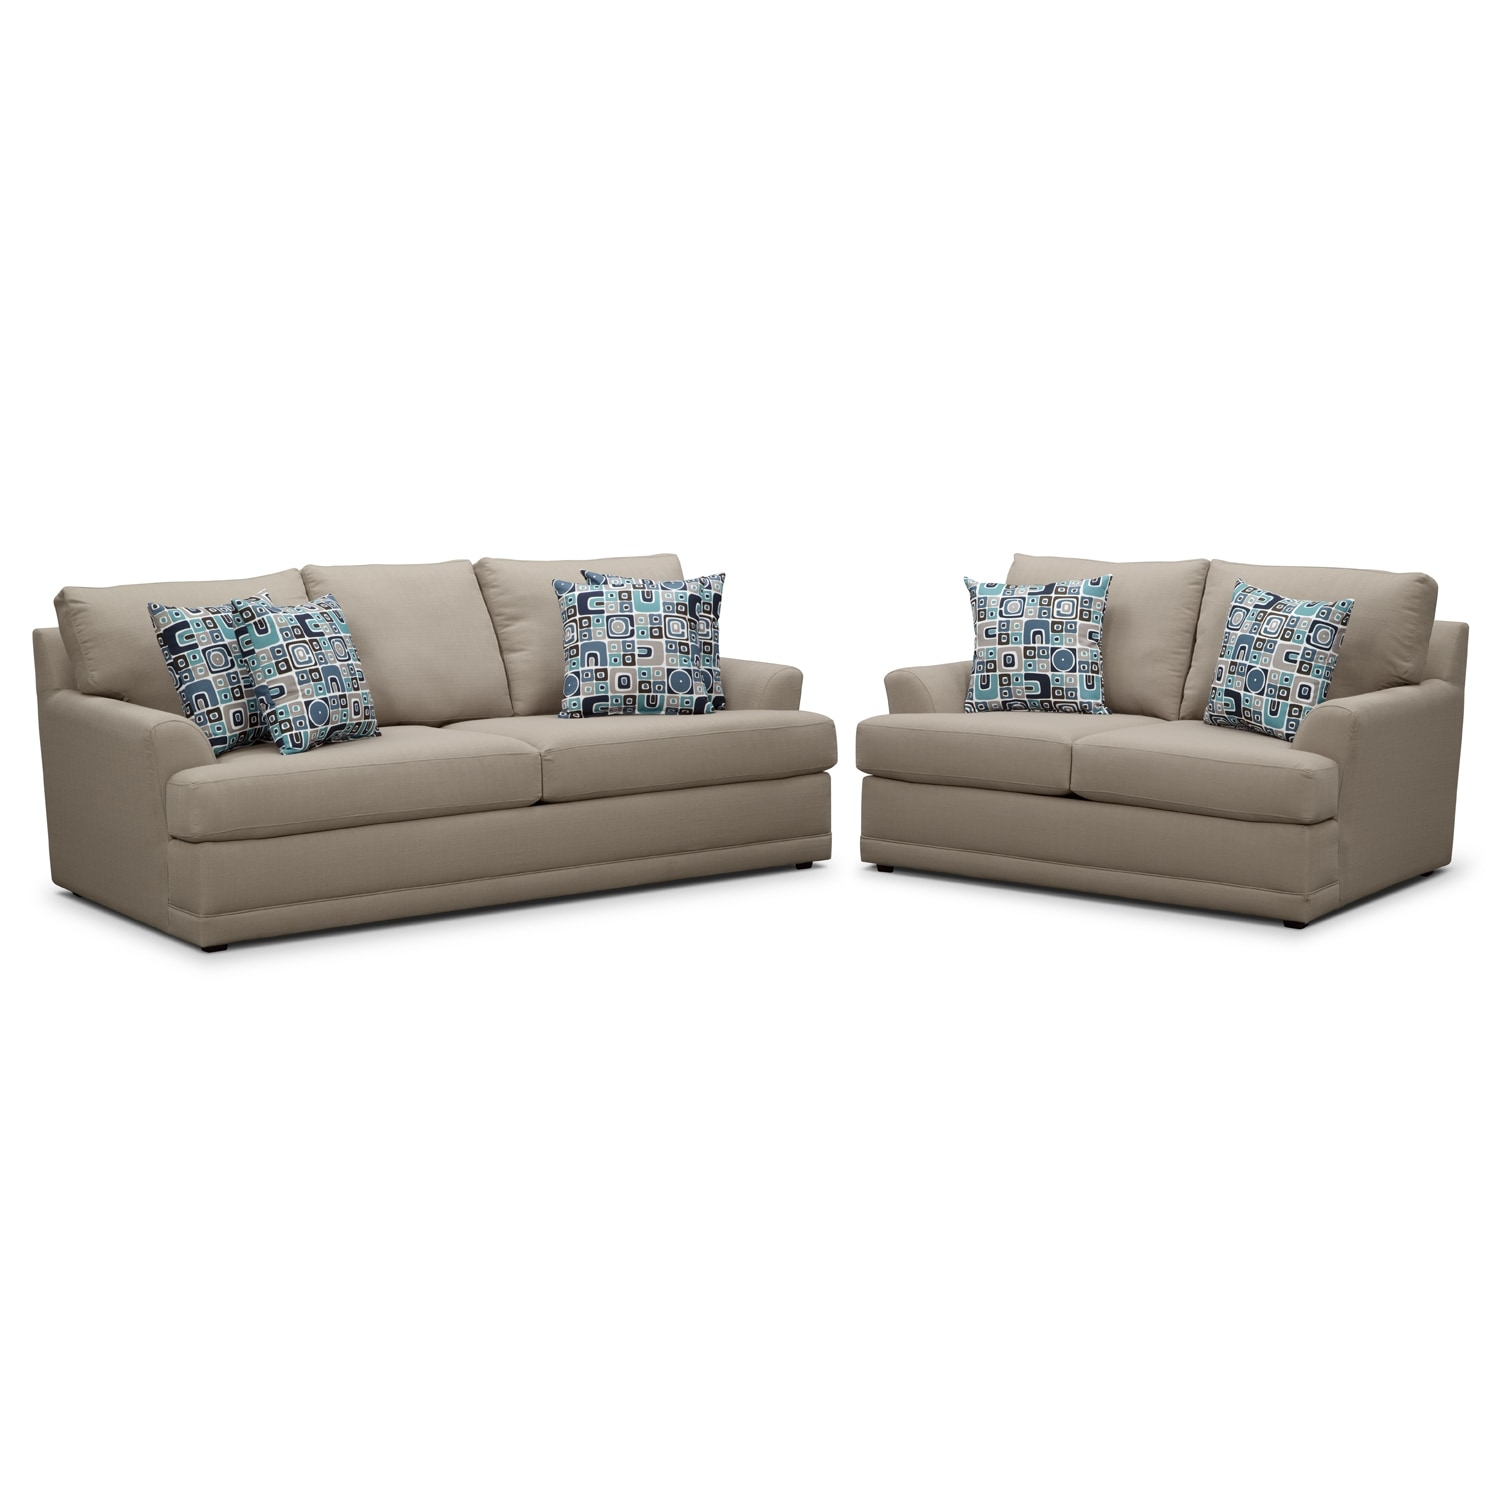 Kismet Sofa and Loveseat Set - Gray